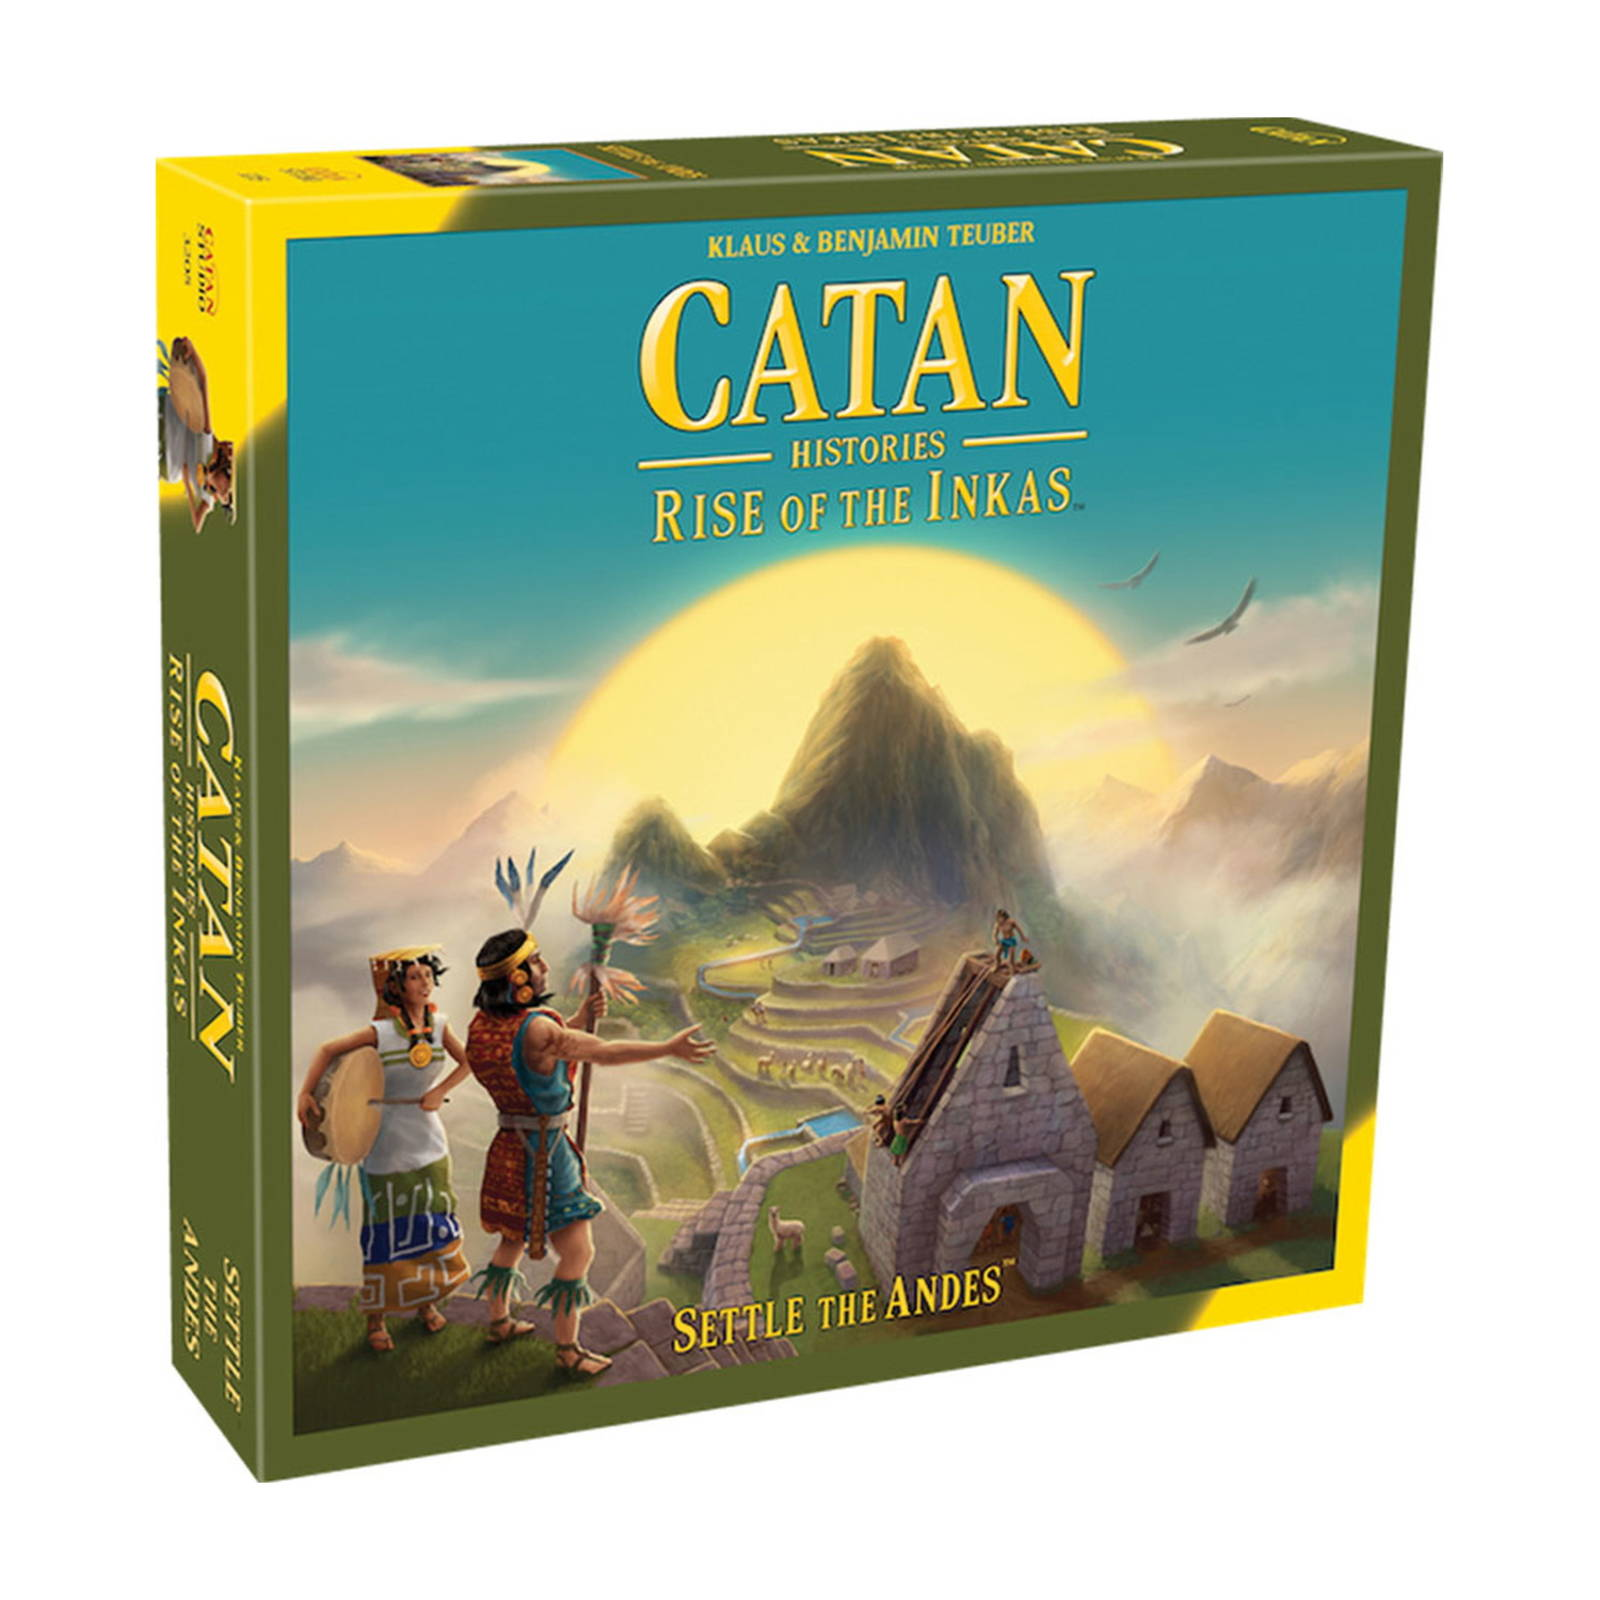 Catan-Histories-Rise-Of-The-Inkas-Settle-The-Ande-da-Klaus-And-Benjamin-Teuber